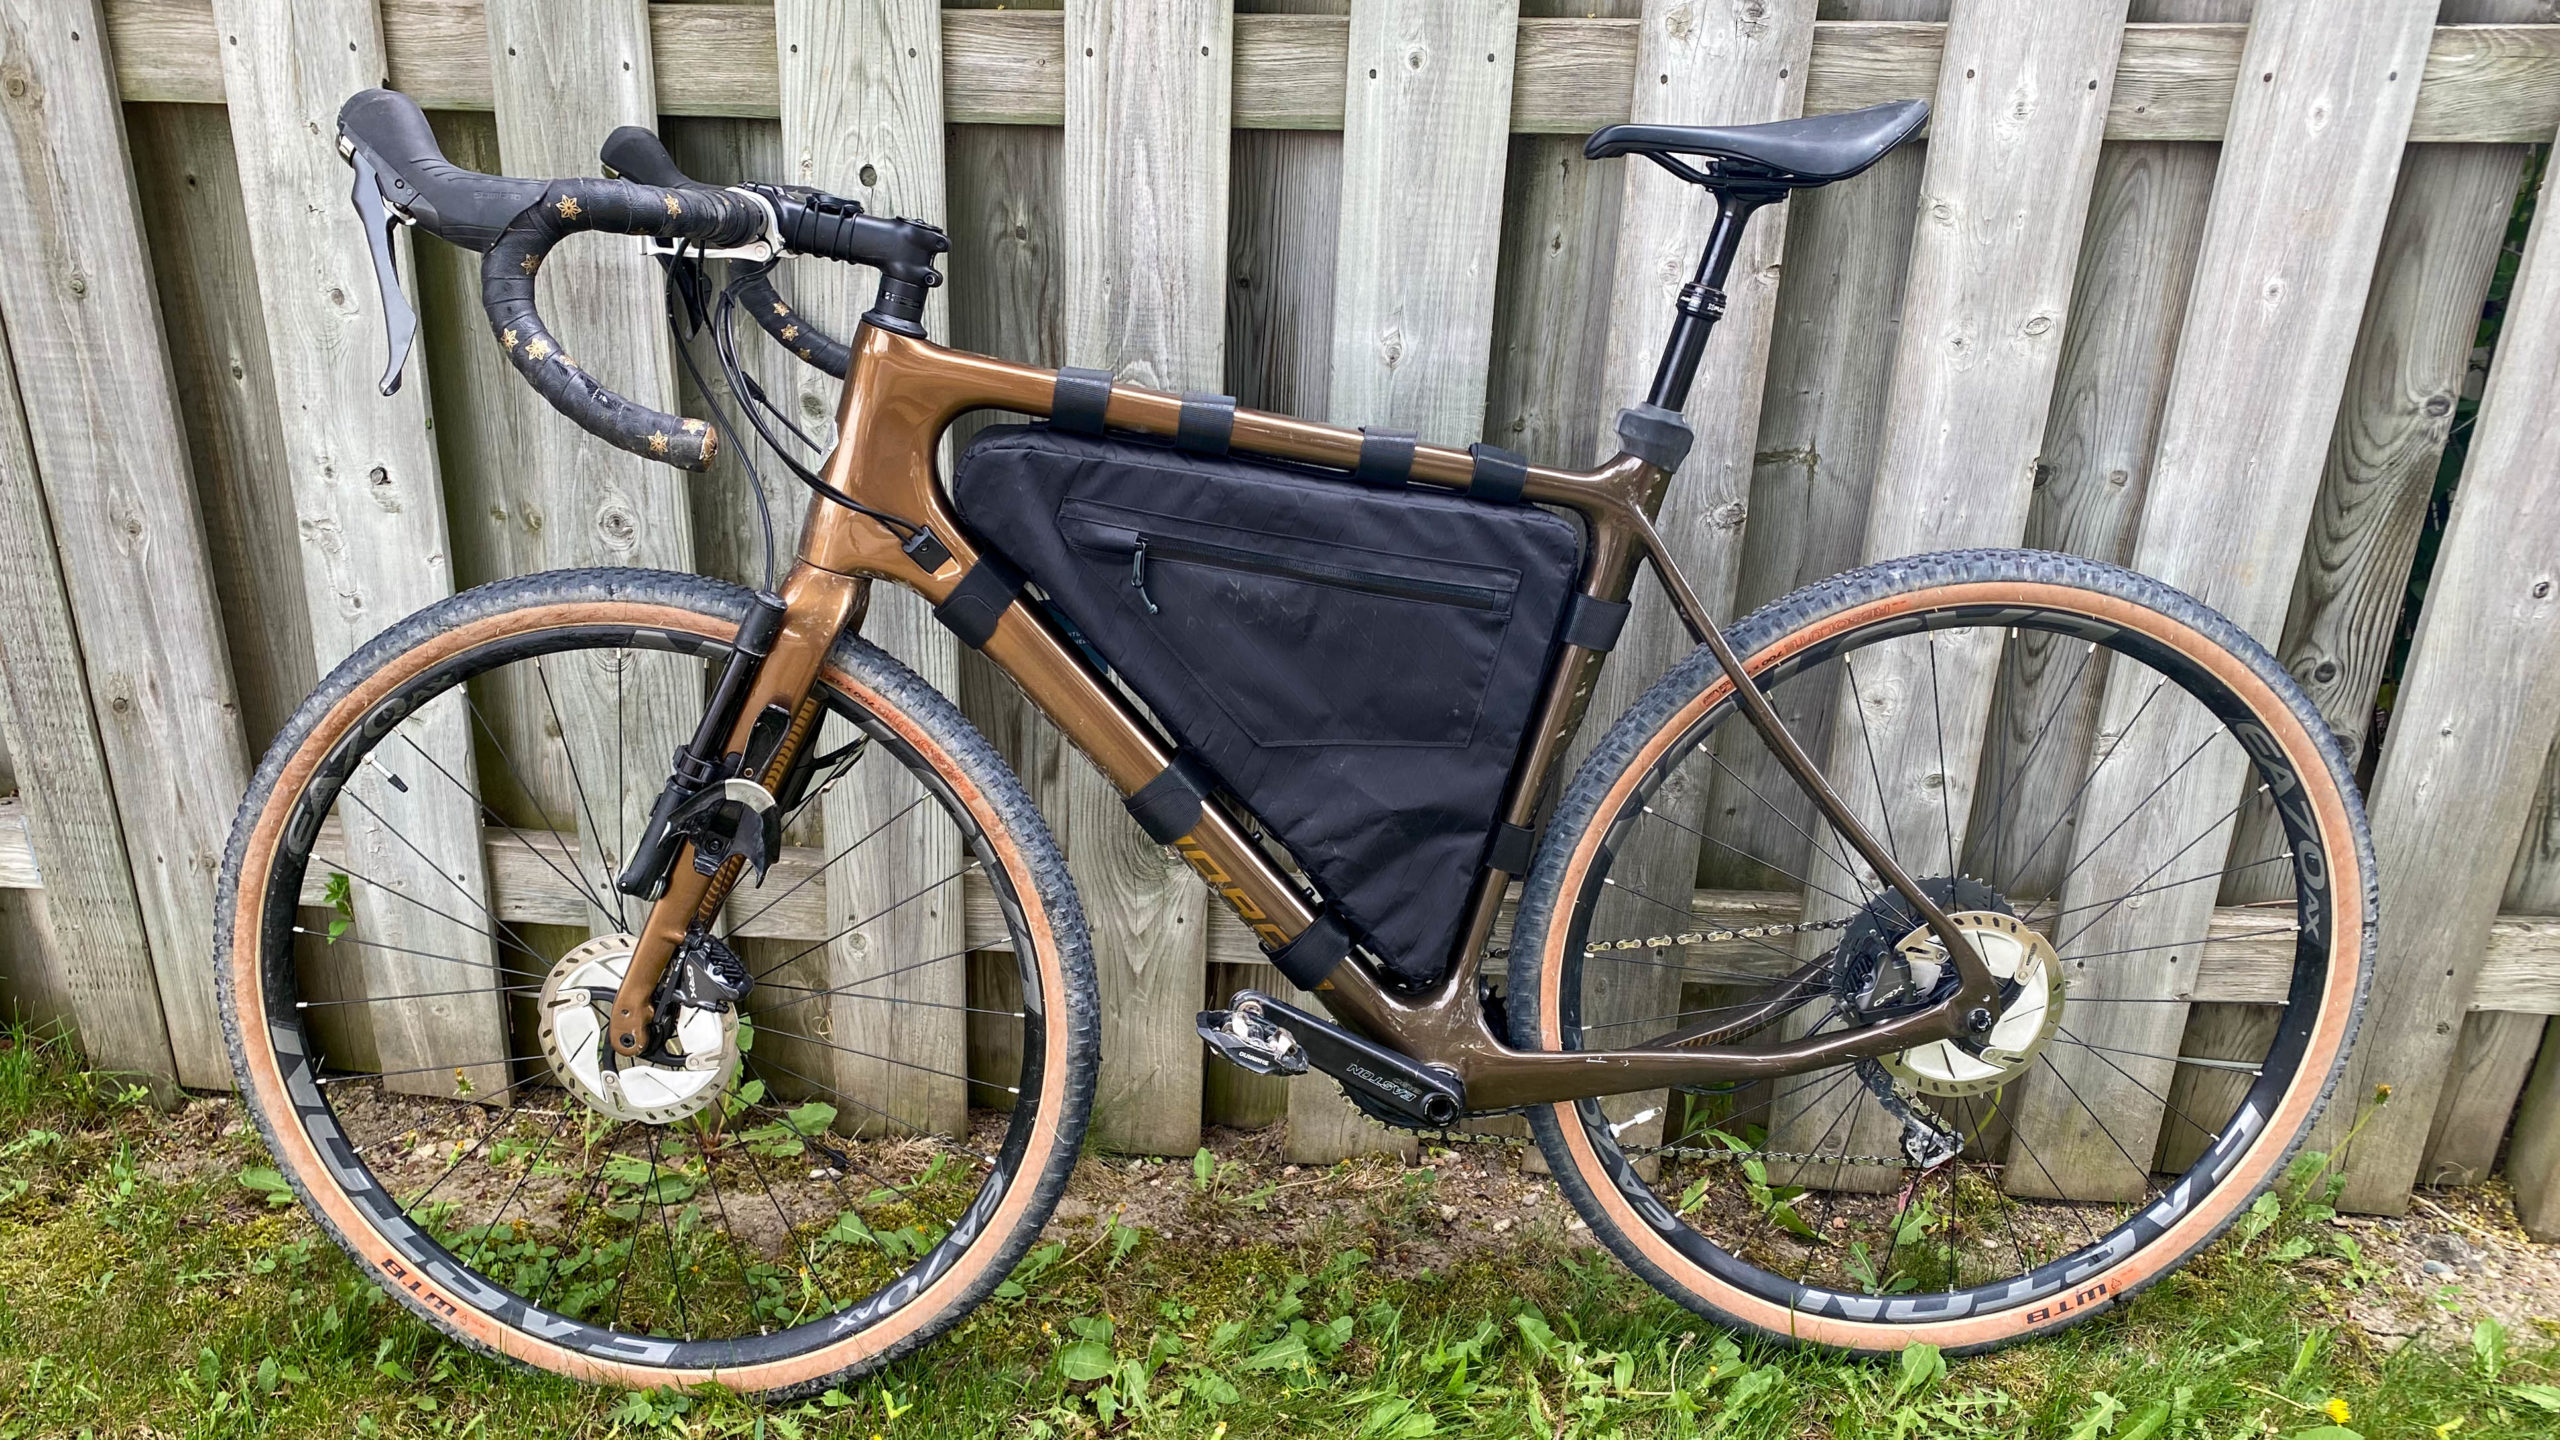 Field and Forest Frame Bag optional side pocket test fit on my Norco Search.